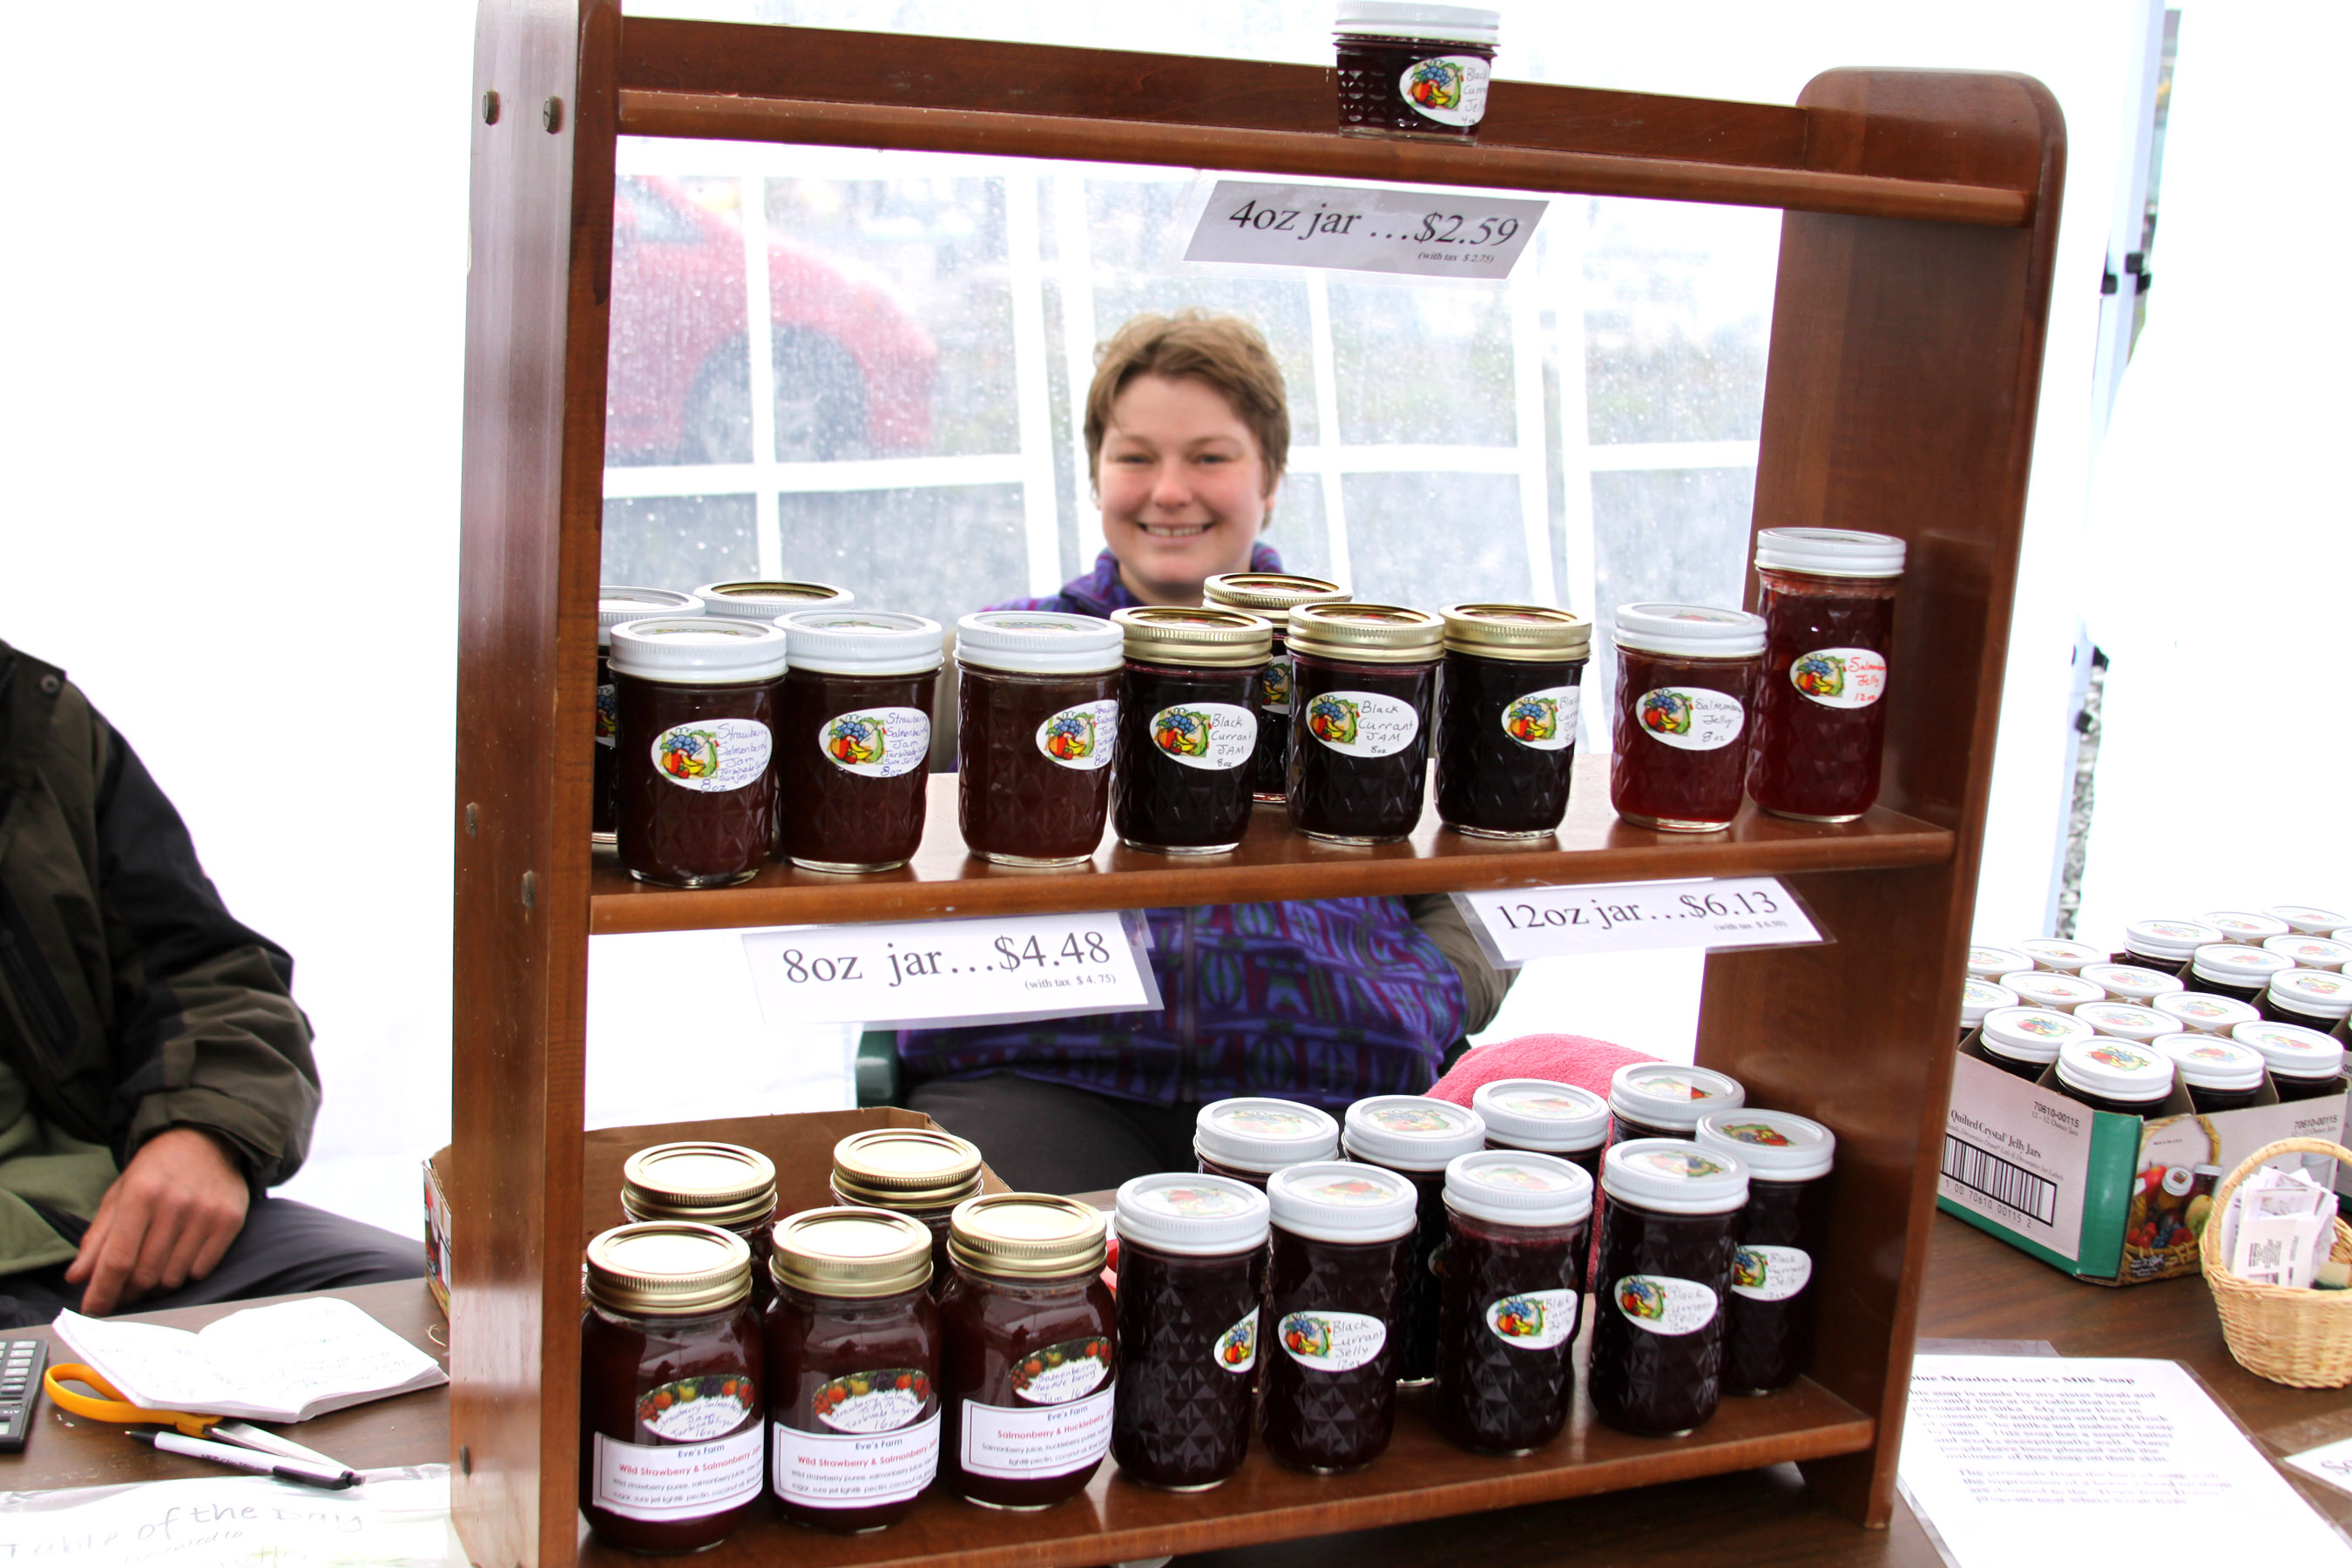 Evening Star Grutter and a rack of her homemade jams and jellies